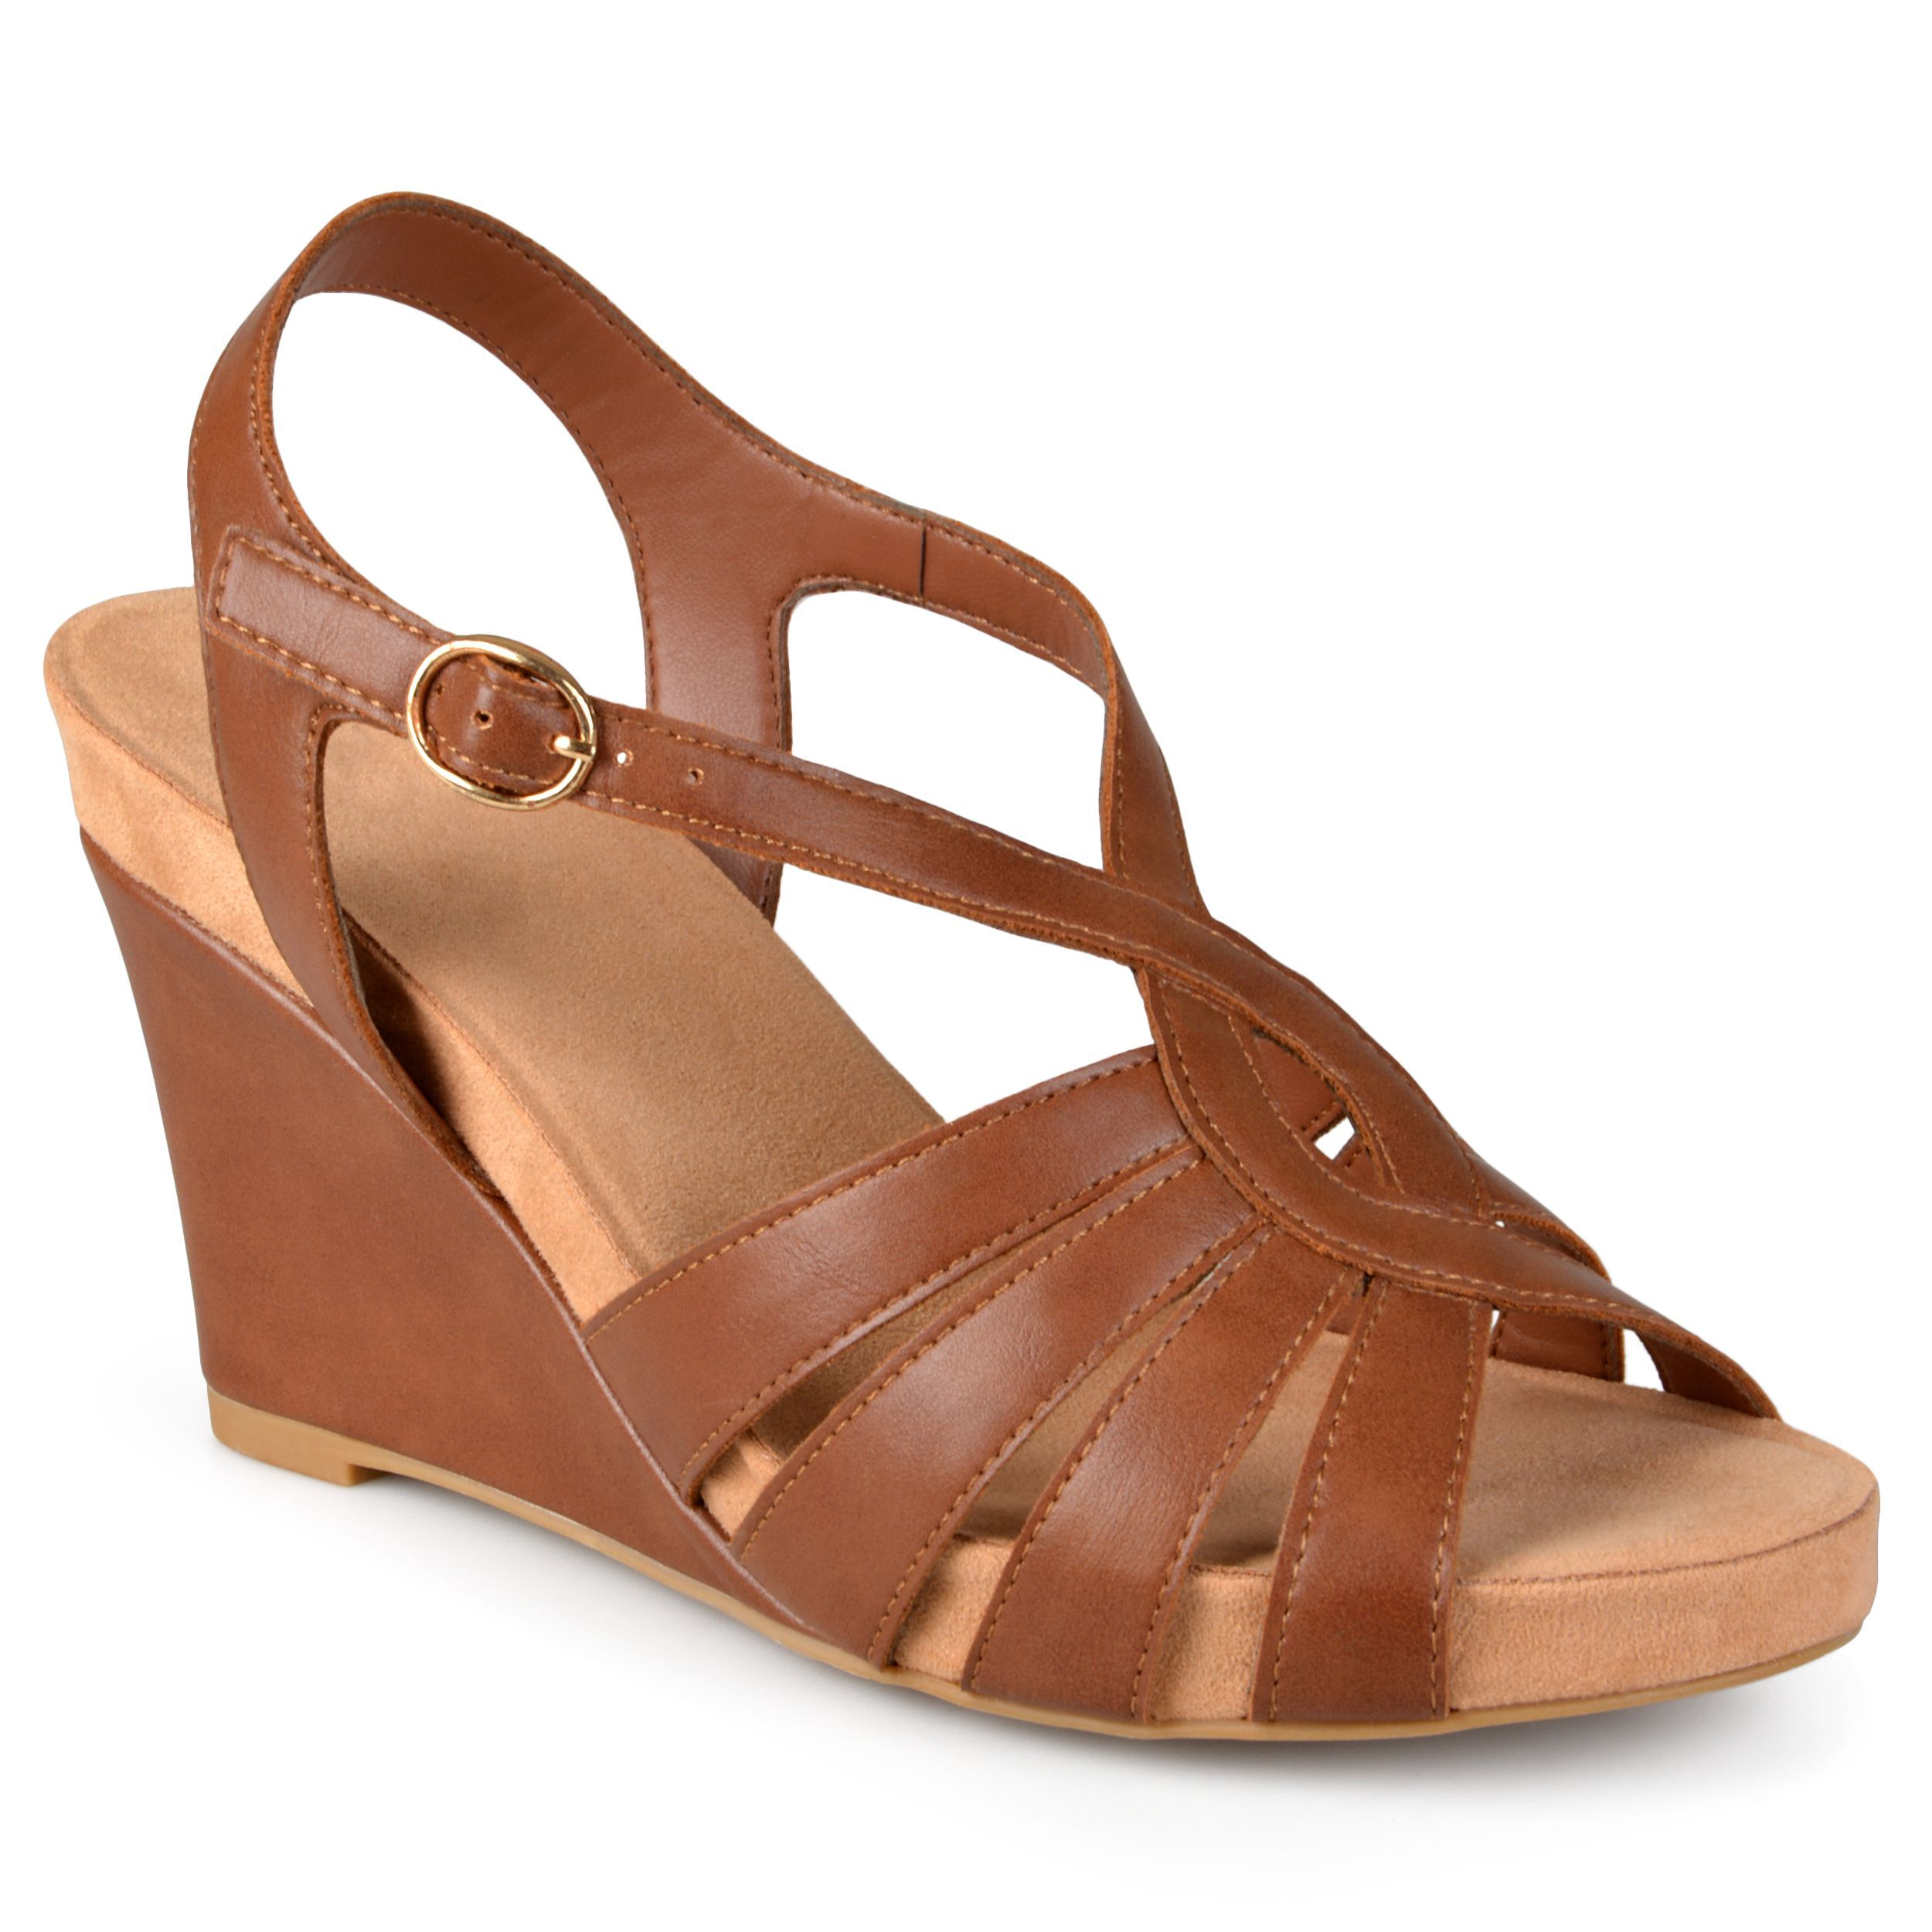 straps comfort blend is shoes of ladies high chunky this fastening dune wedge cork style grainne nude a detail buckle features comforter large and metal sandal pin sandals